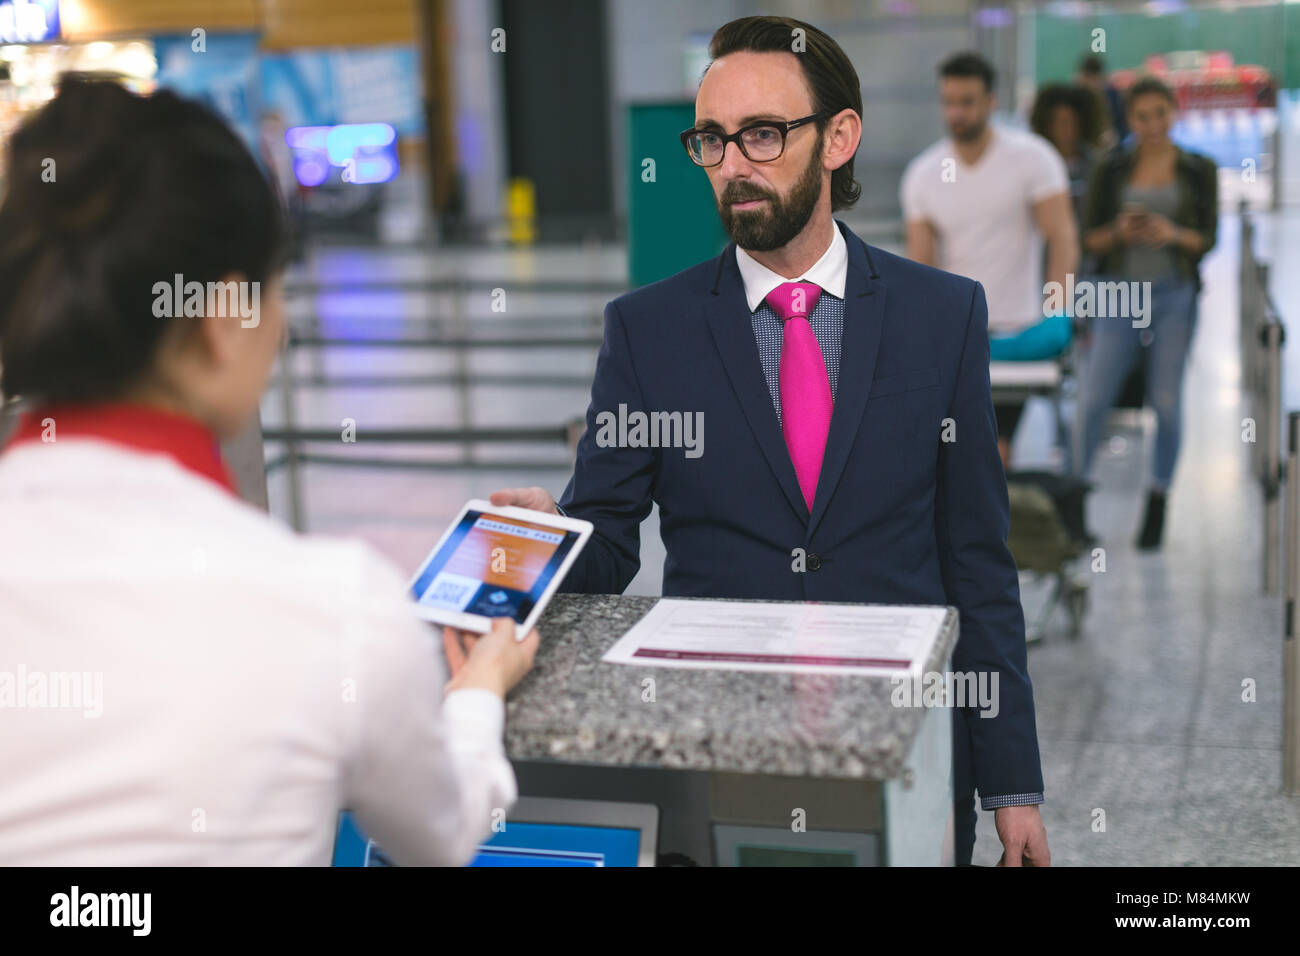 Airline check-in attendant checking ticket of commuter on digital tablet - Stock Image